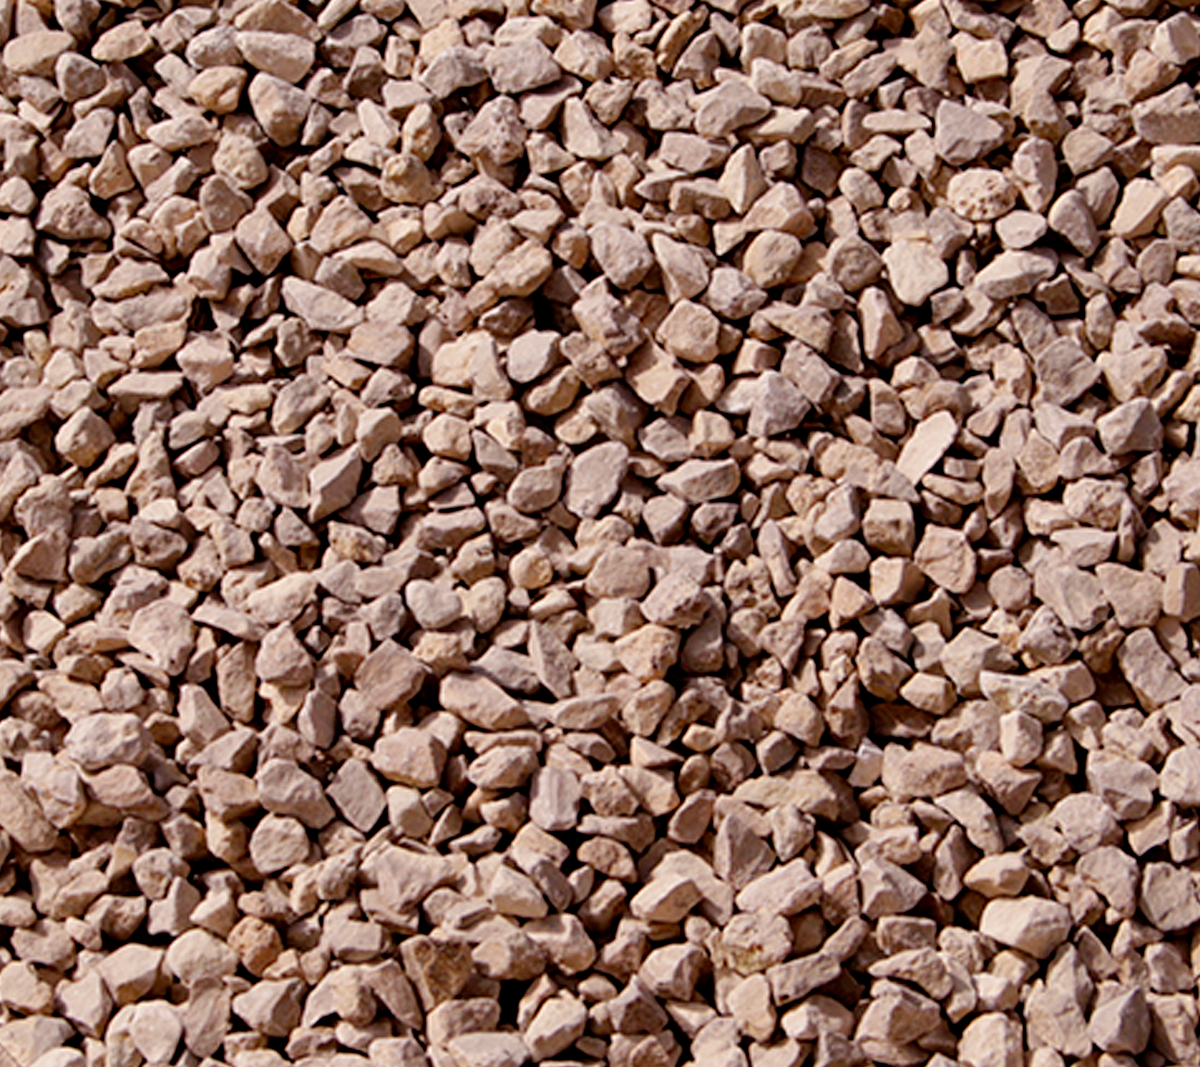 Pattison YARD BALLAST is produced from ordovician dolomitic limestone, manufactured to specific properties and predetermined sizes of fractured limestone.